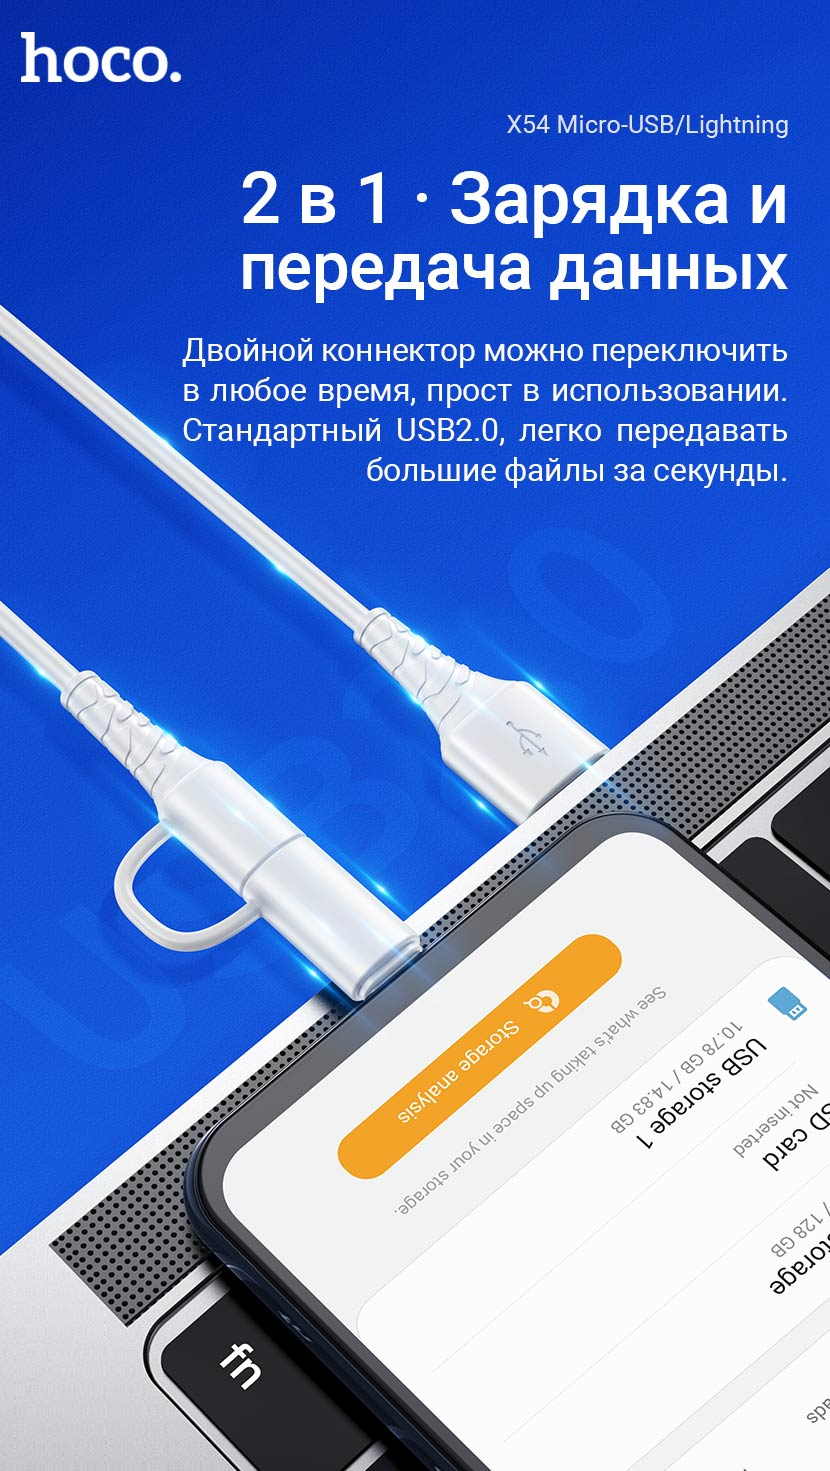 hoco news x54 cool dual 2in1 charging data cable transmission ru